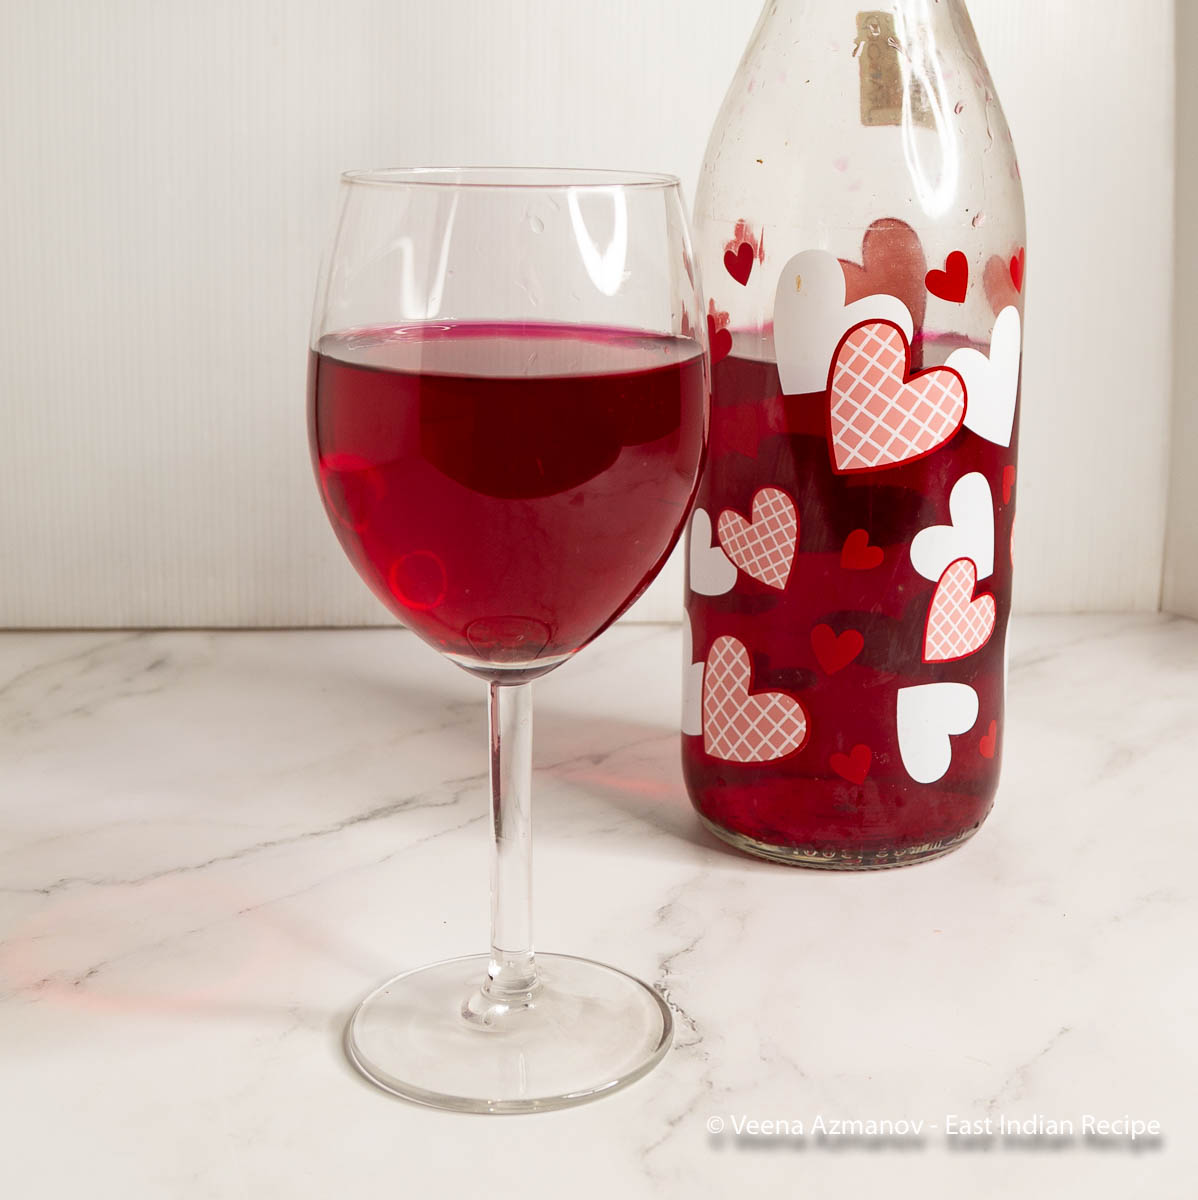 A wine glass with beetroot wine.